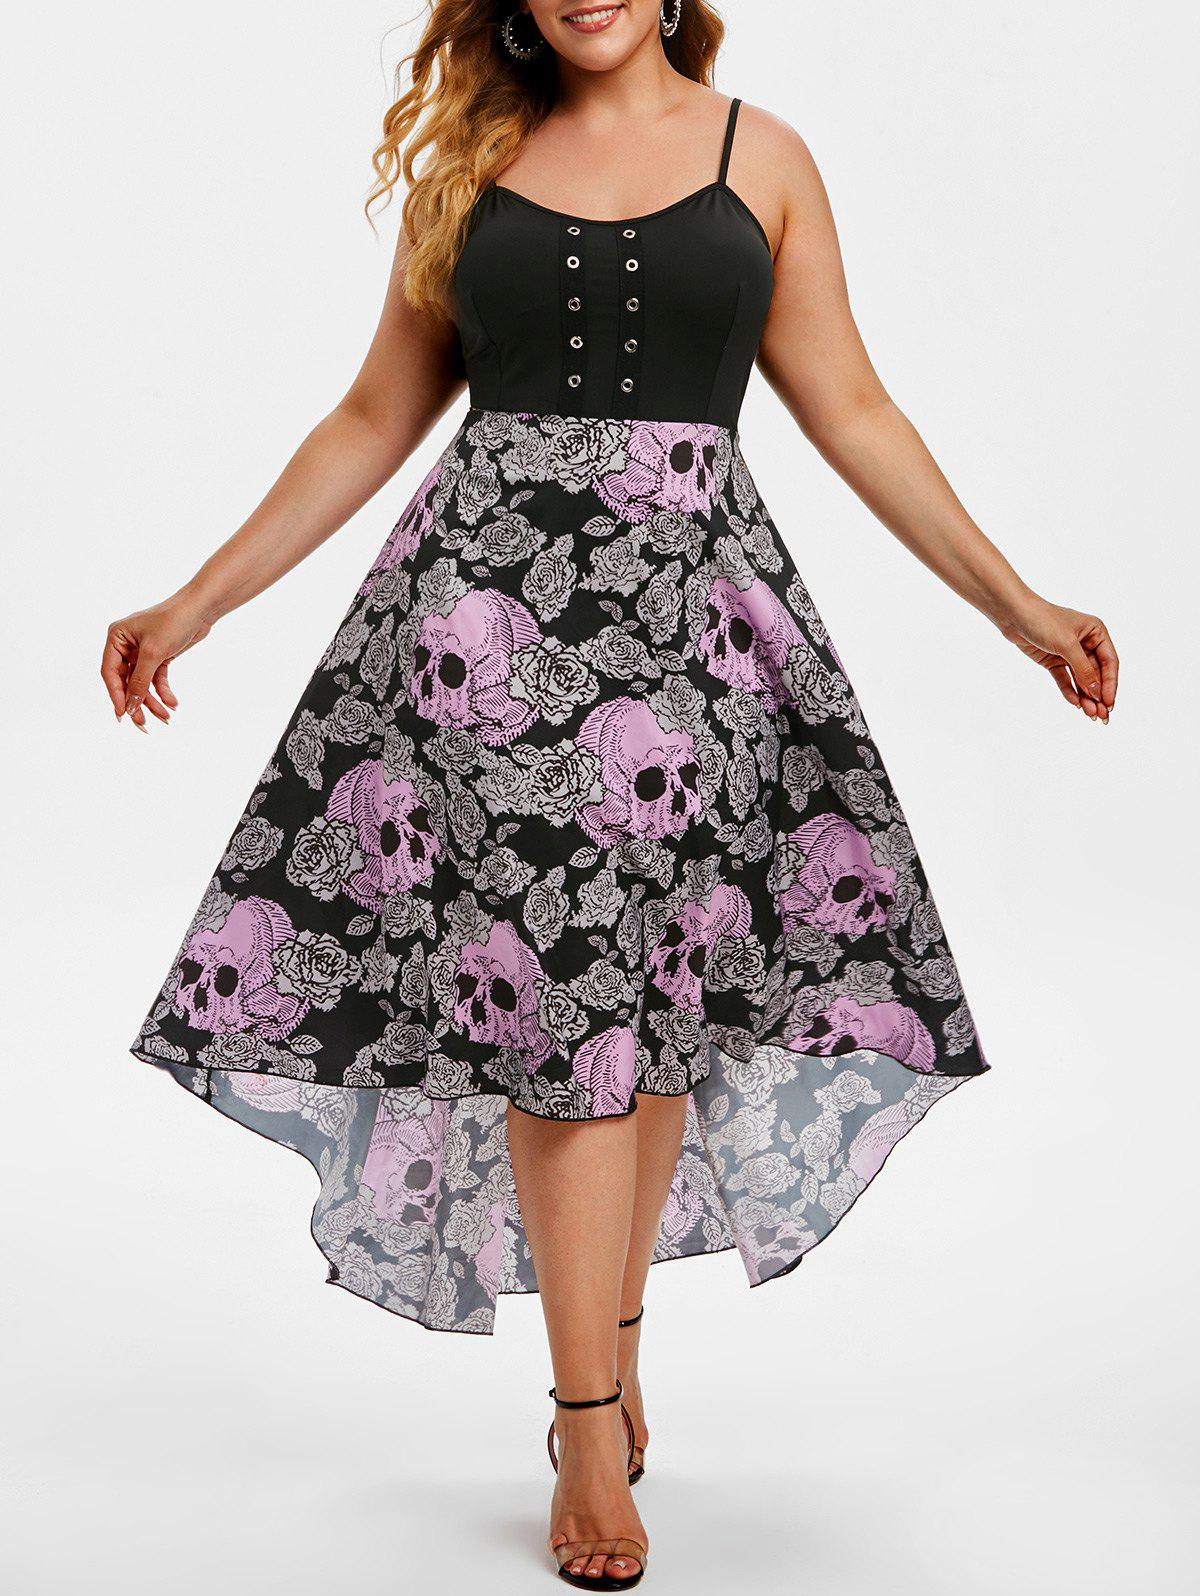 Store Grommet High Low Floral Skull Halloween Plus Size Dress